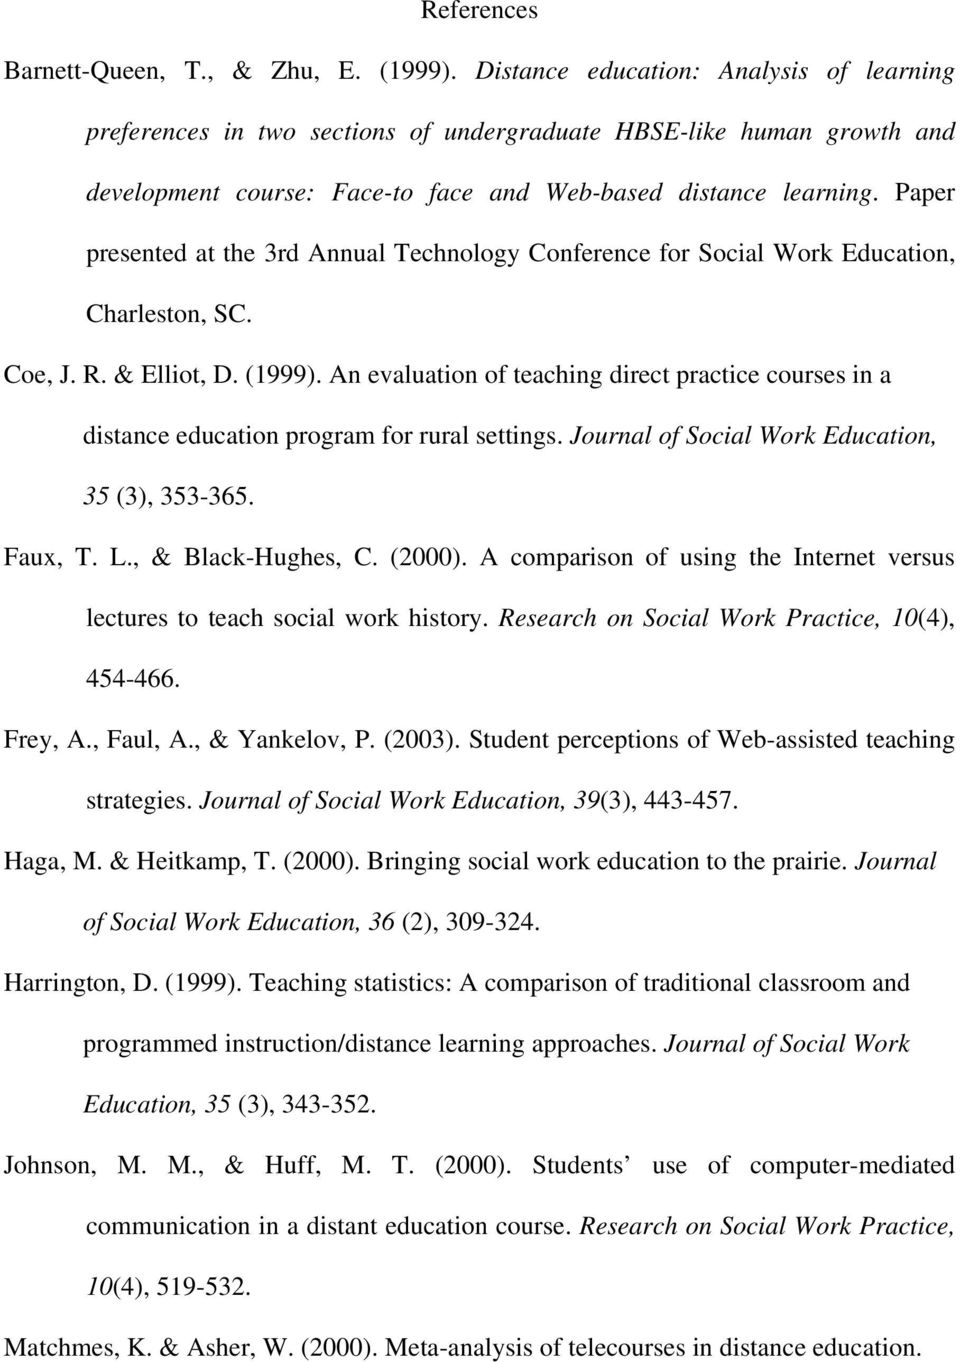 Paper presented at the 3rd Annual Technology Conference for Social Work Education, Charleston, SC. Coe, J. R. & Elliot, D. (1999).